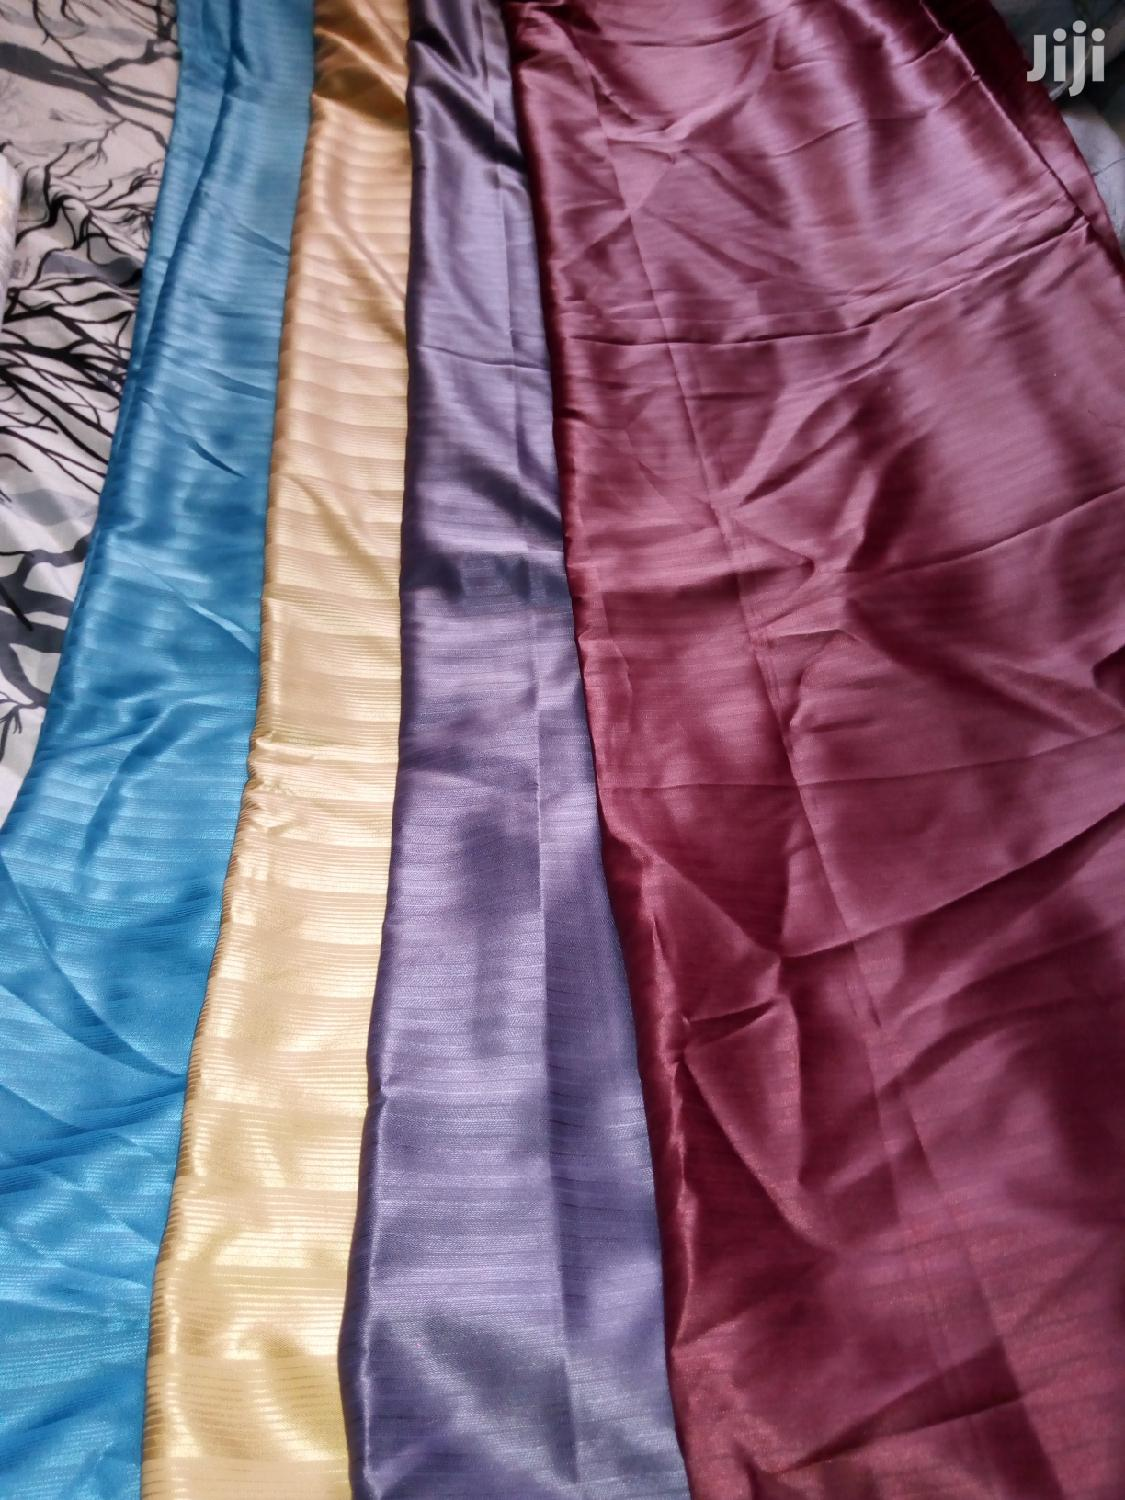 West African (Senegalese) Fabric | Clothing for sale in Kampala, Central Region, Uganda